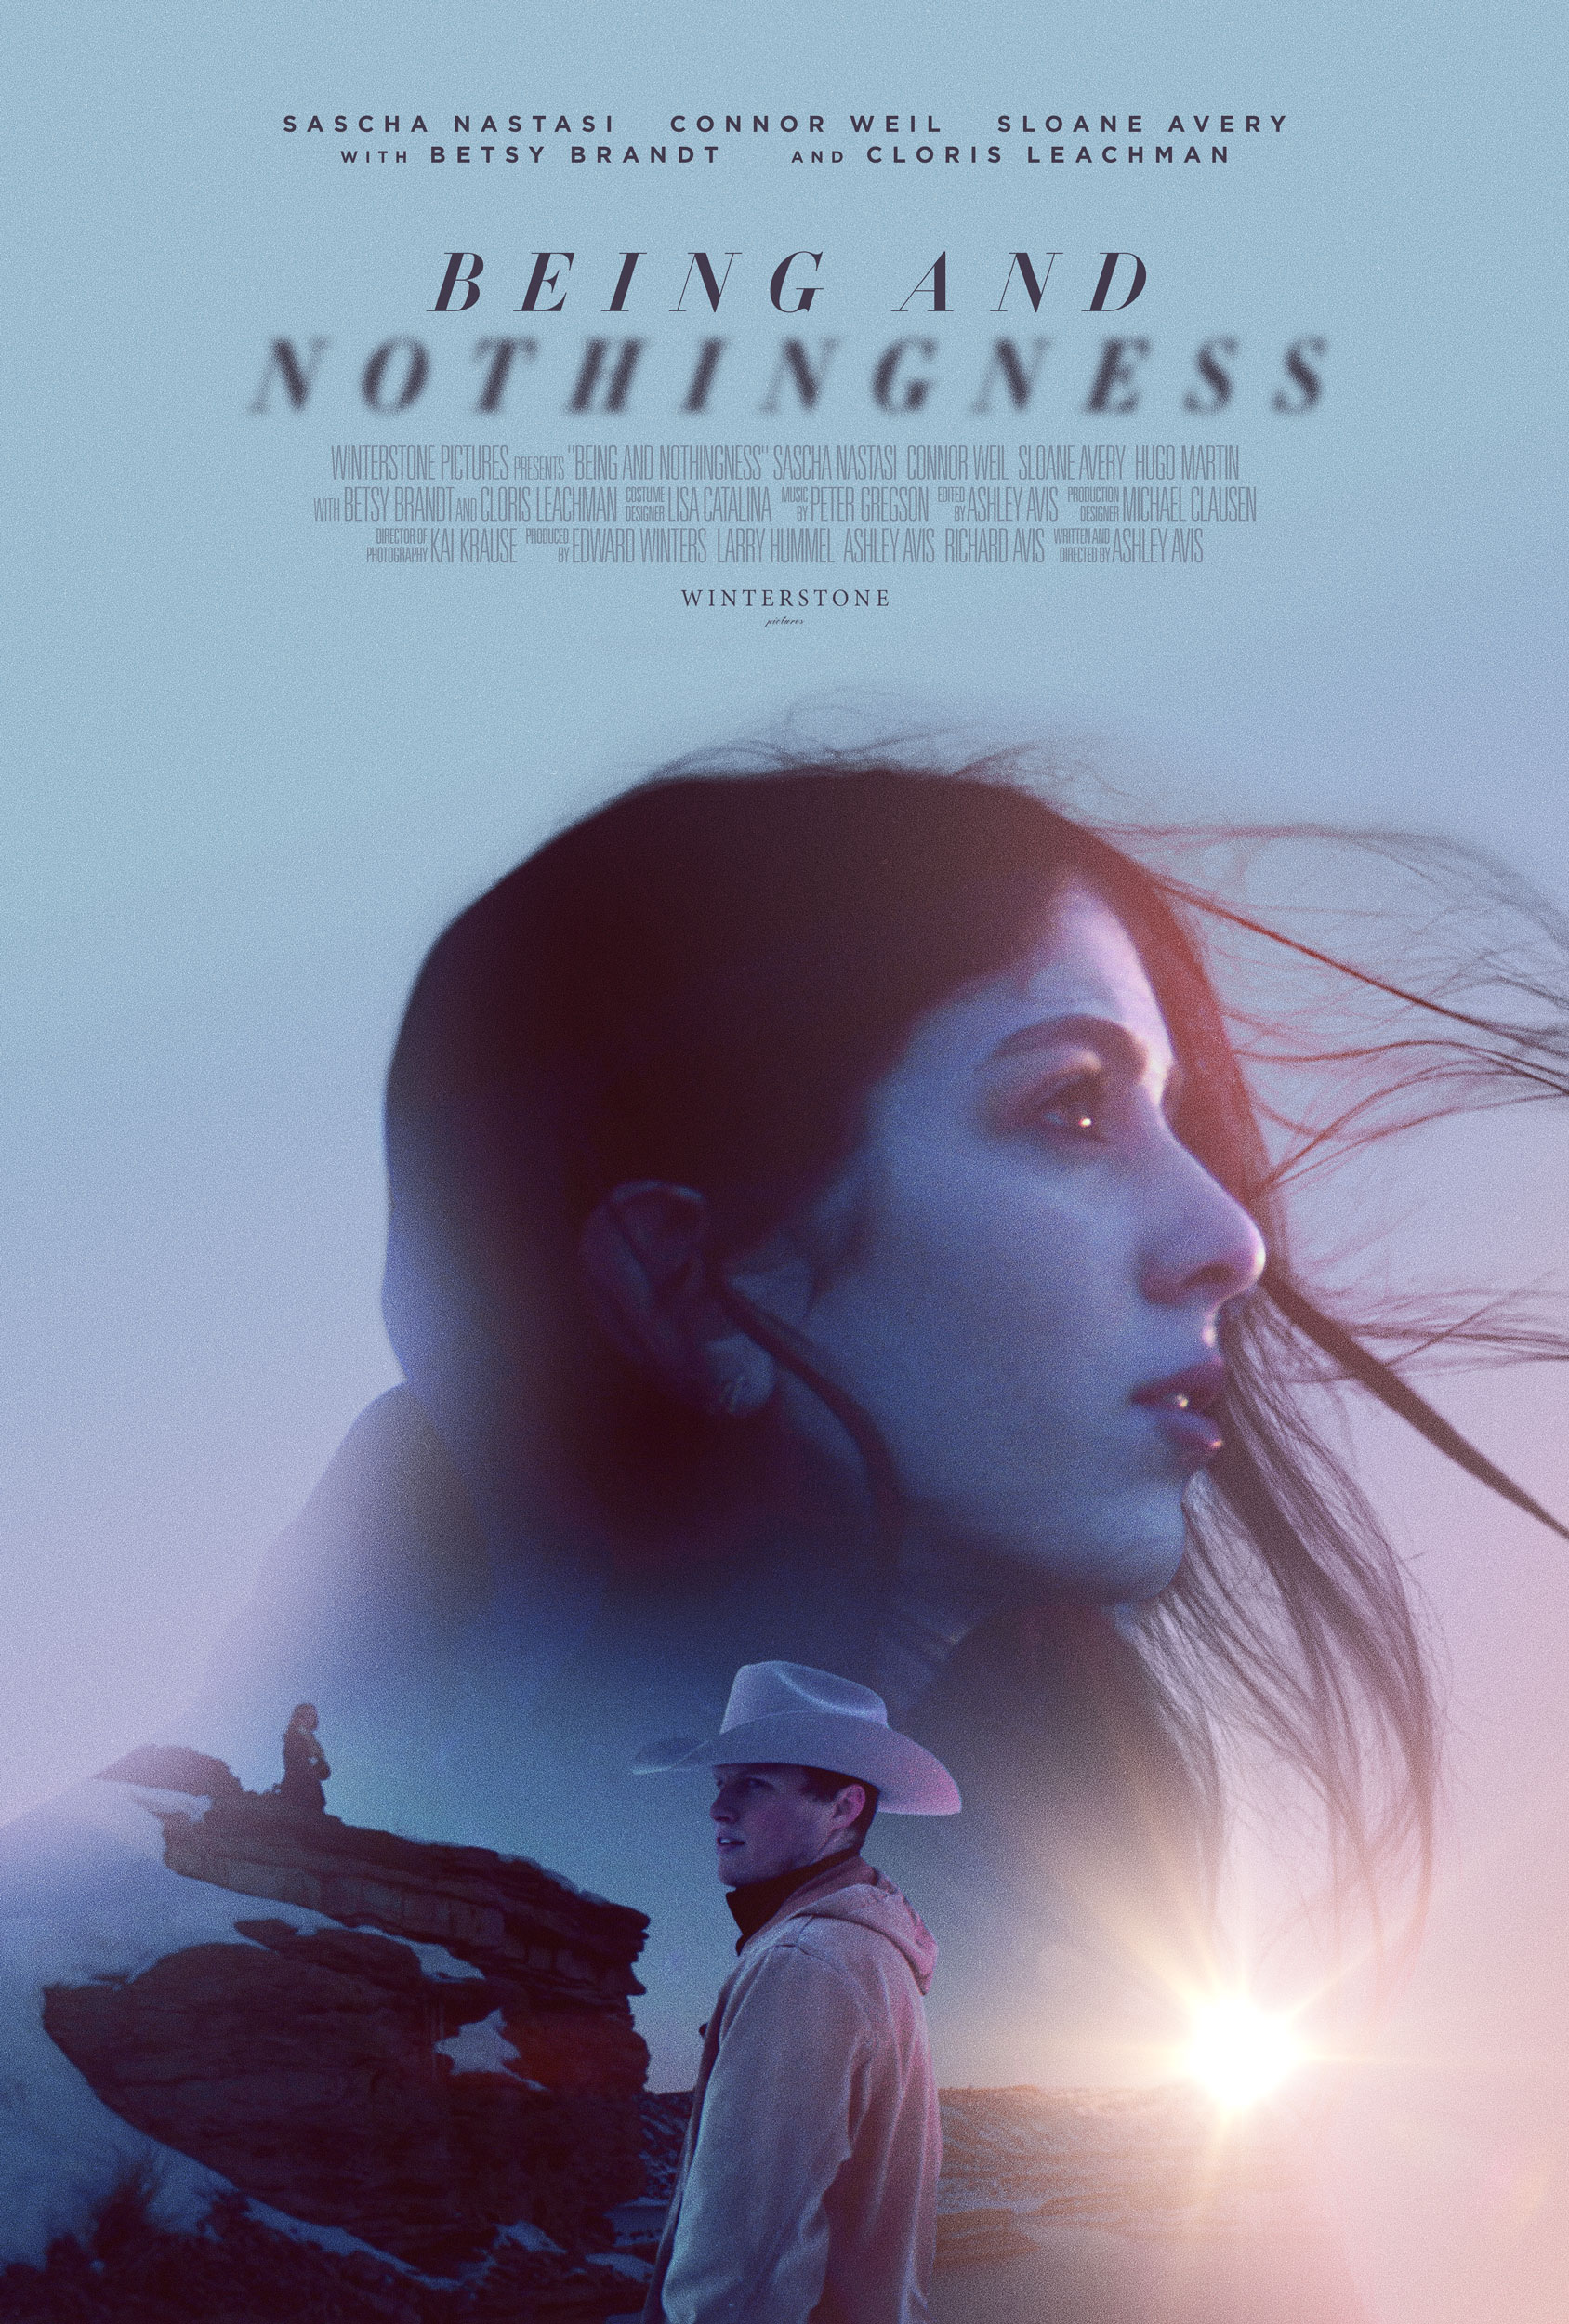 beingnothingness_poster_large.jpg